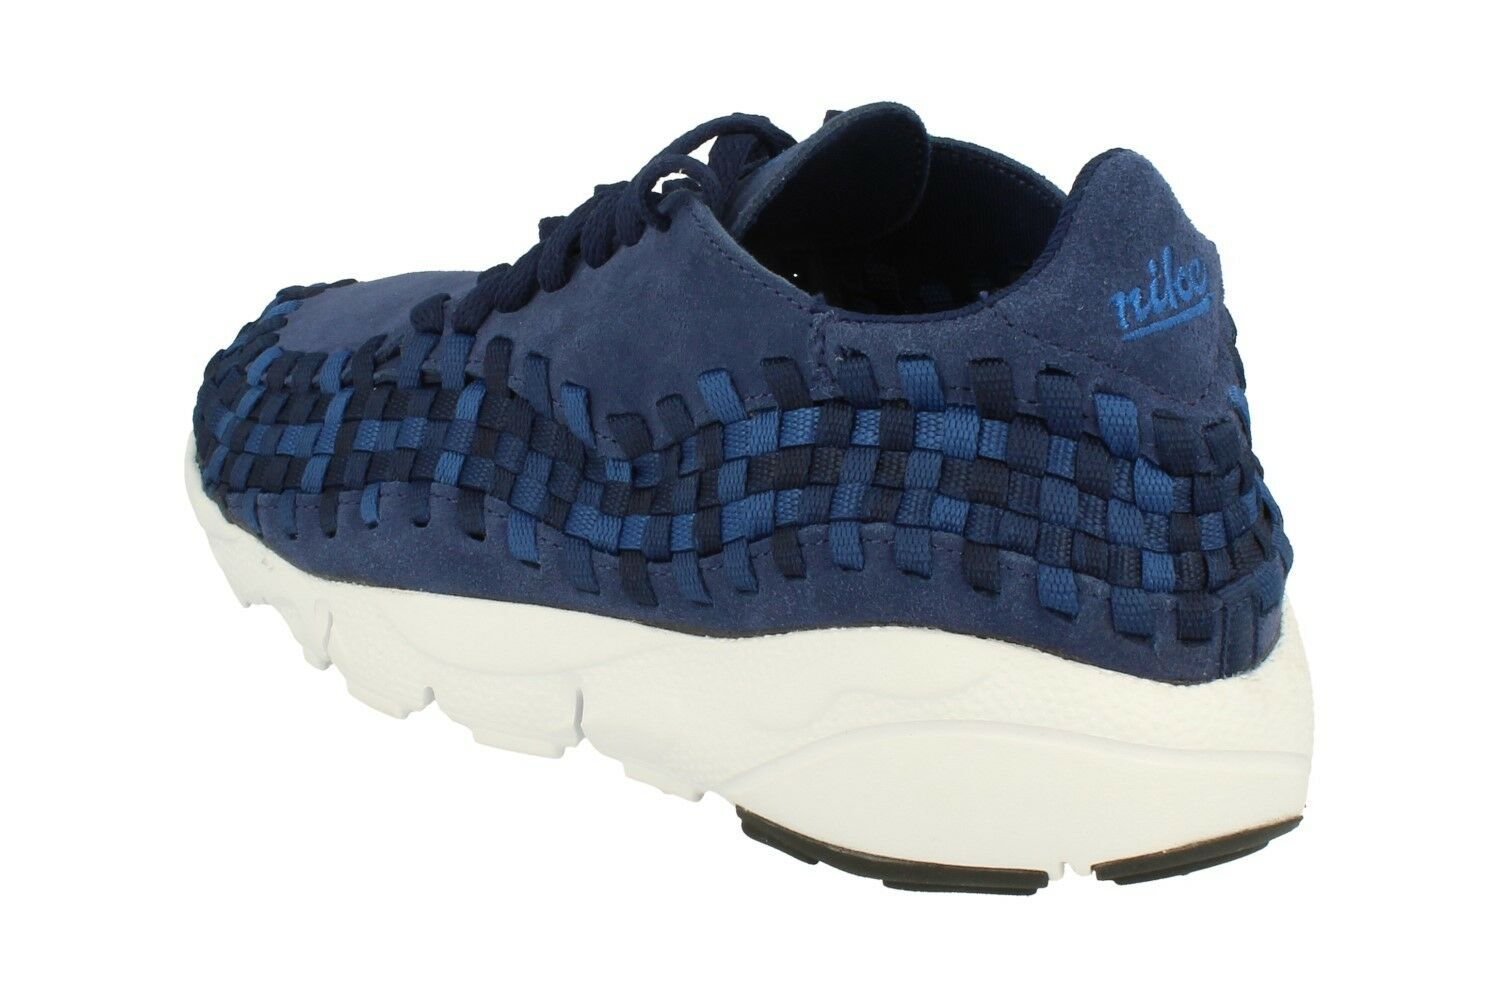 Nike Air Footscape SurvêteHommes t t t Presque comme neuf   running trainers 875797 Baskets Chaussure s 400 445779